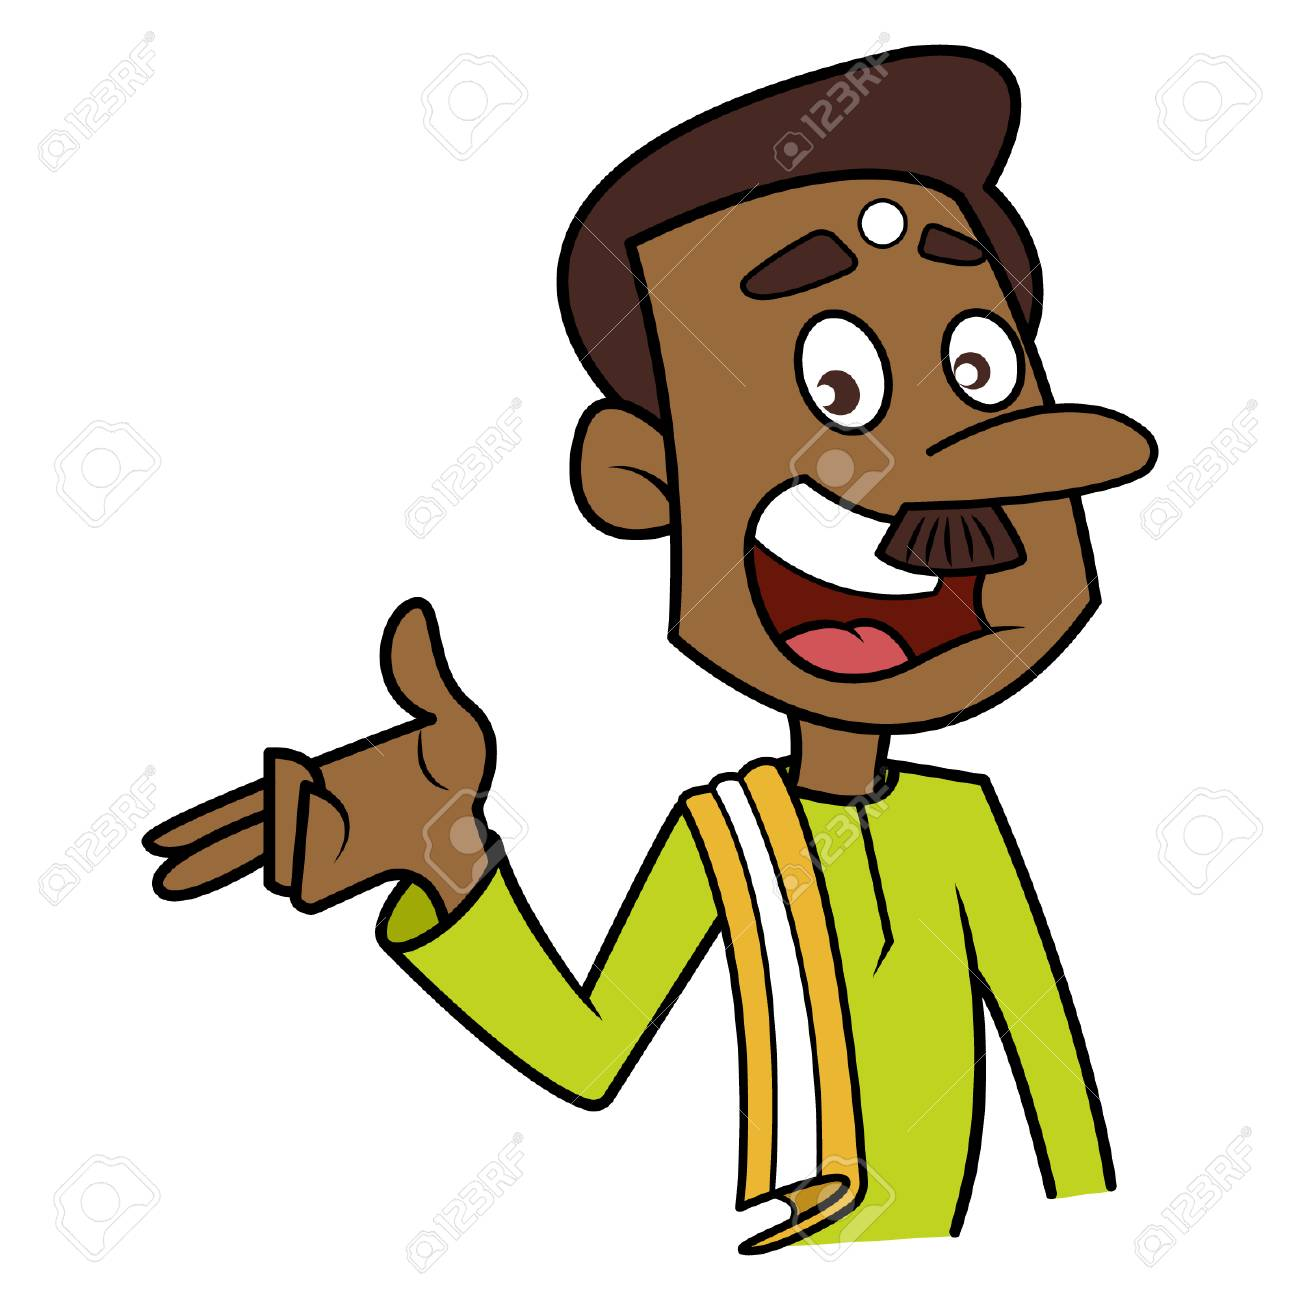 Cartoon south Indian man talking with hand expression..